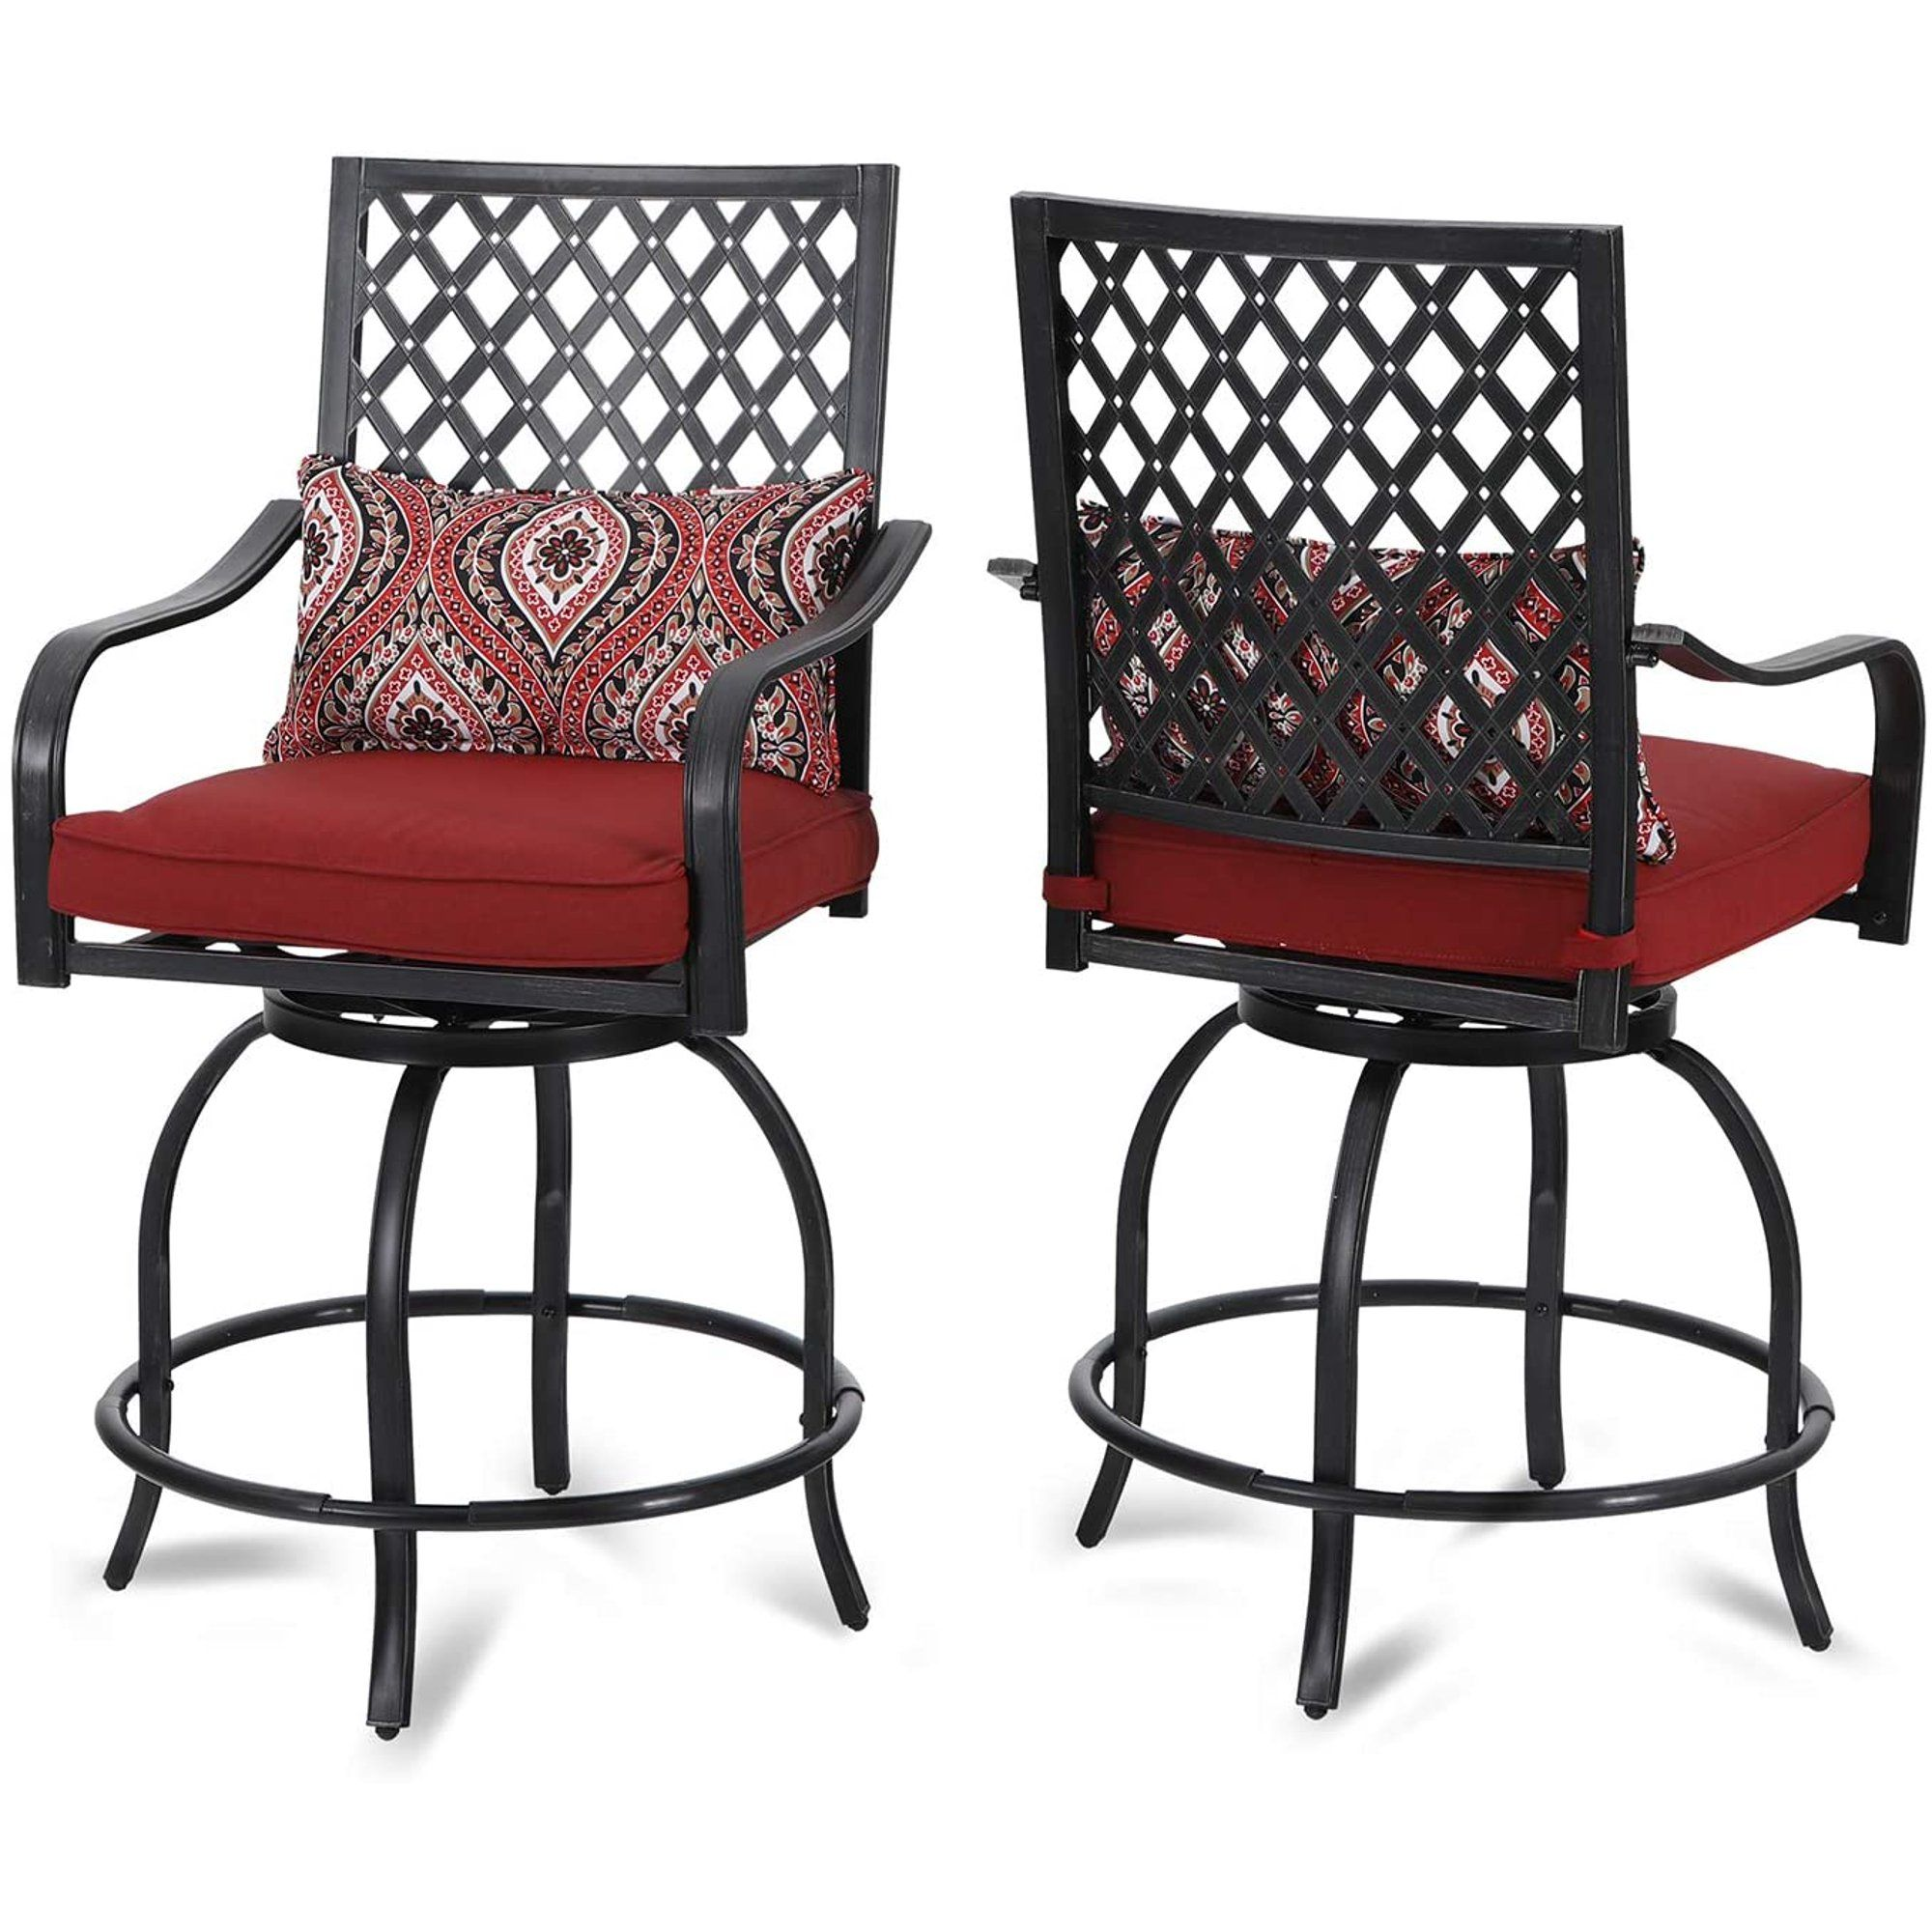 patio dining chairs outdoor furniture